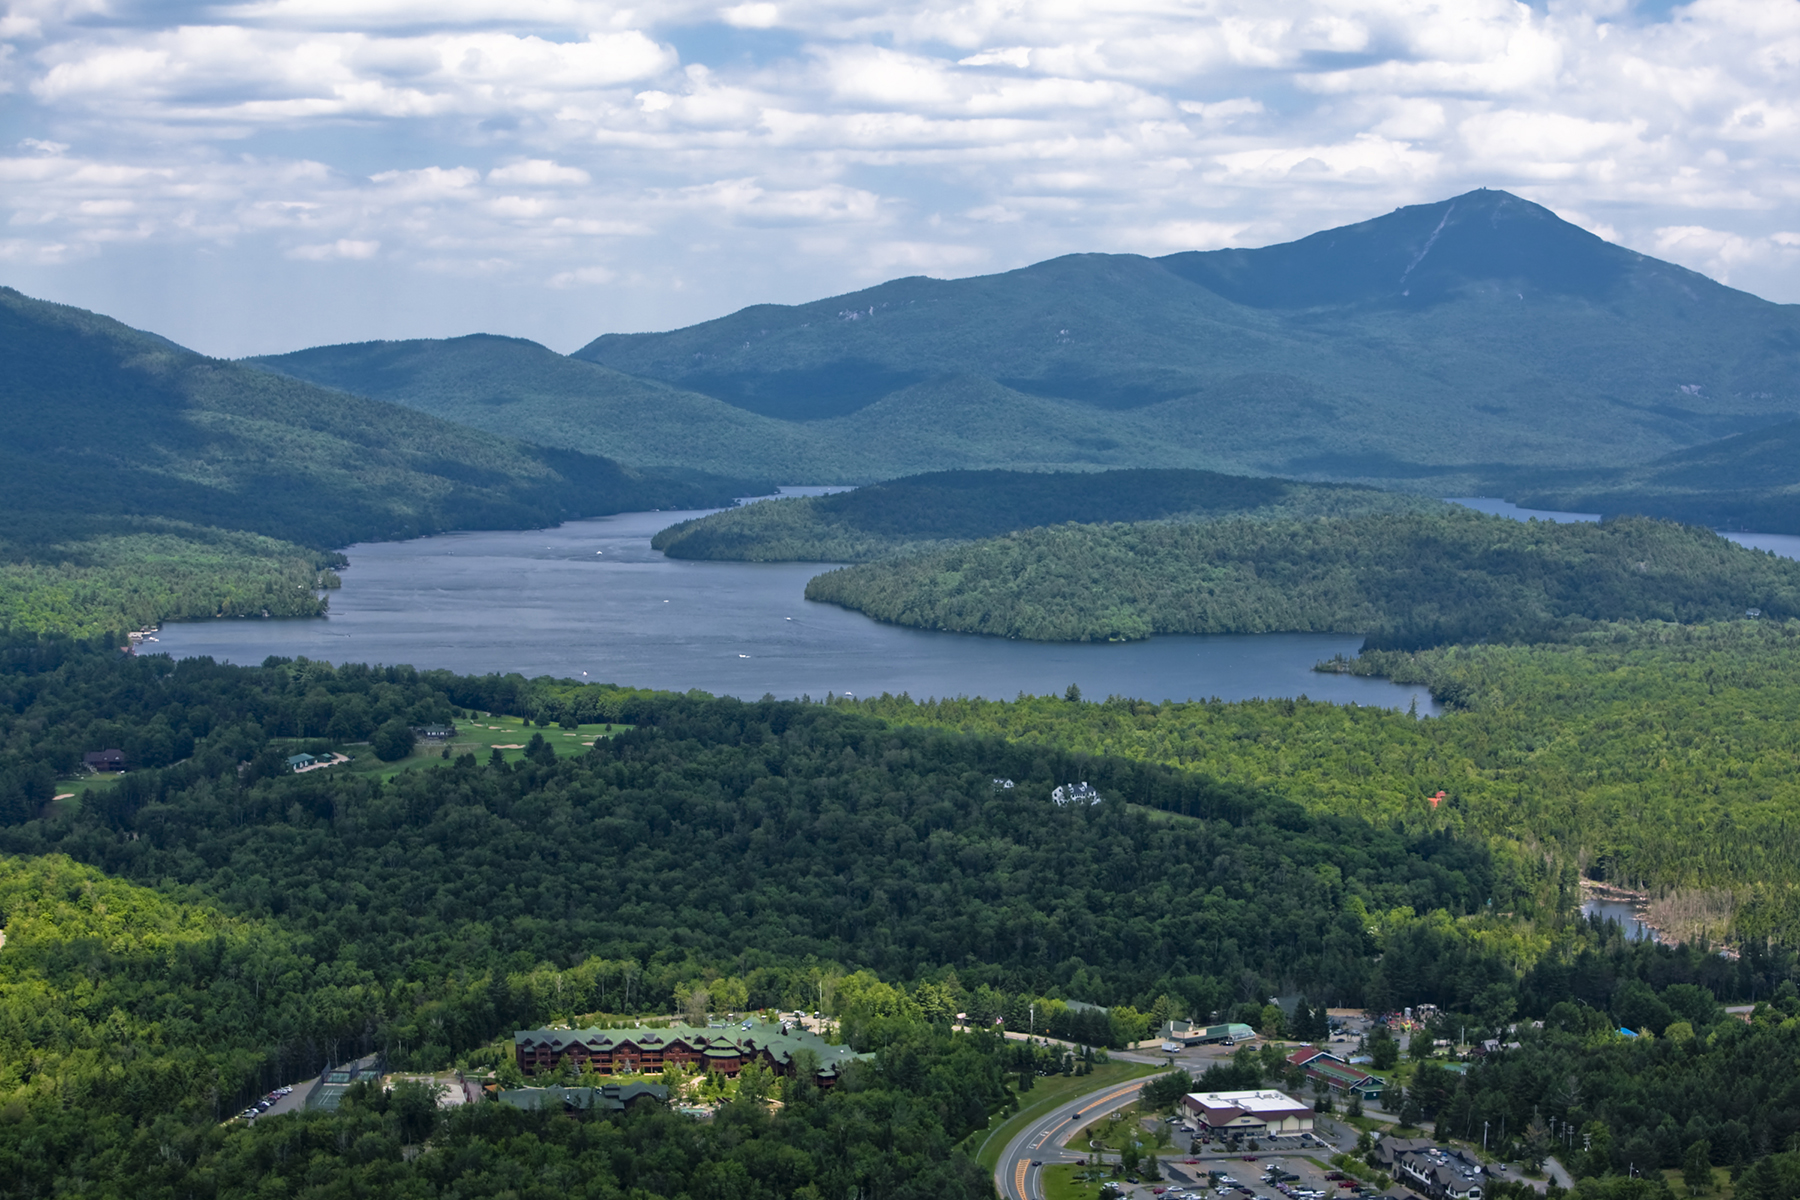 Fractional Ownership for Sale at Whiteface Lodge 7 Whiteface Inn Lane Suite 107 Lake Placid, New York 12946 United States